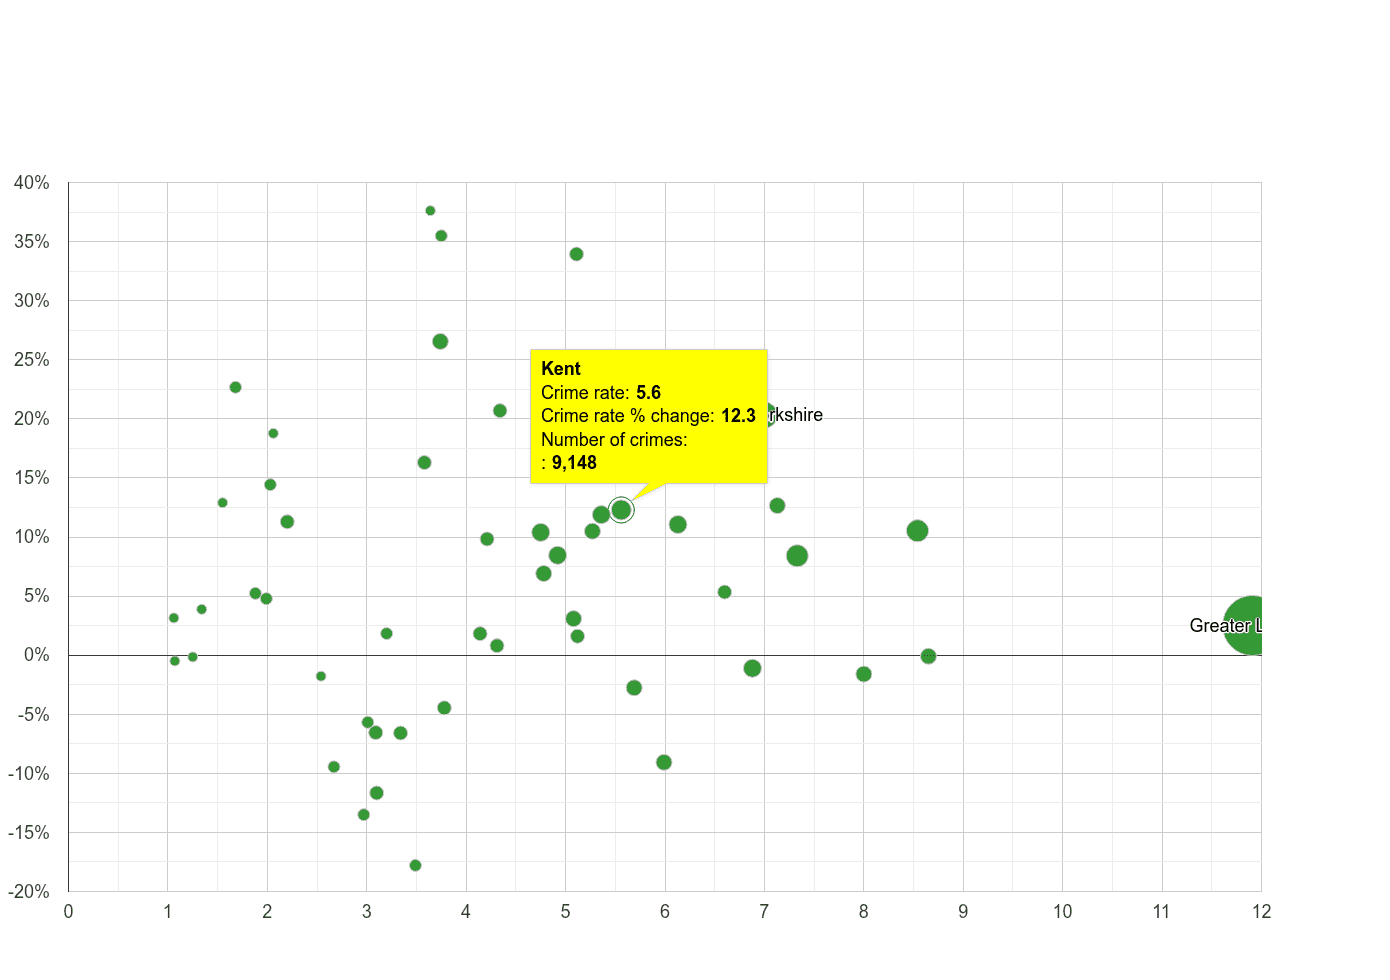 Kent vehicle crime rate compared to other counties